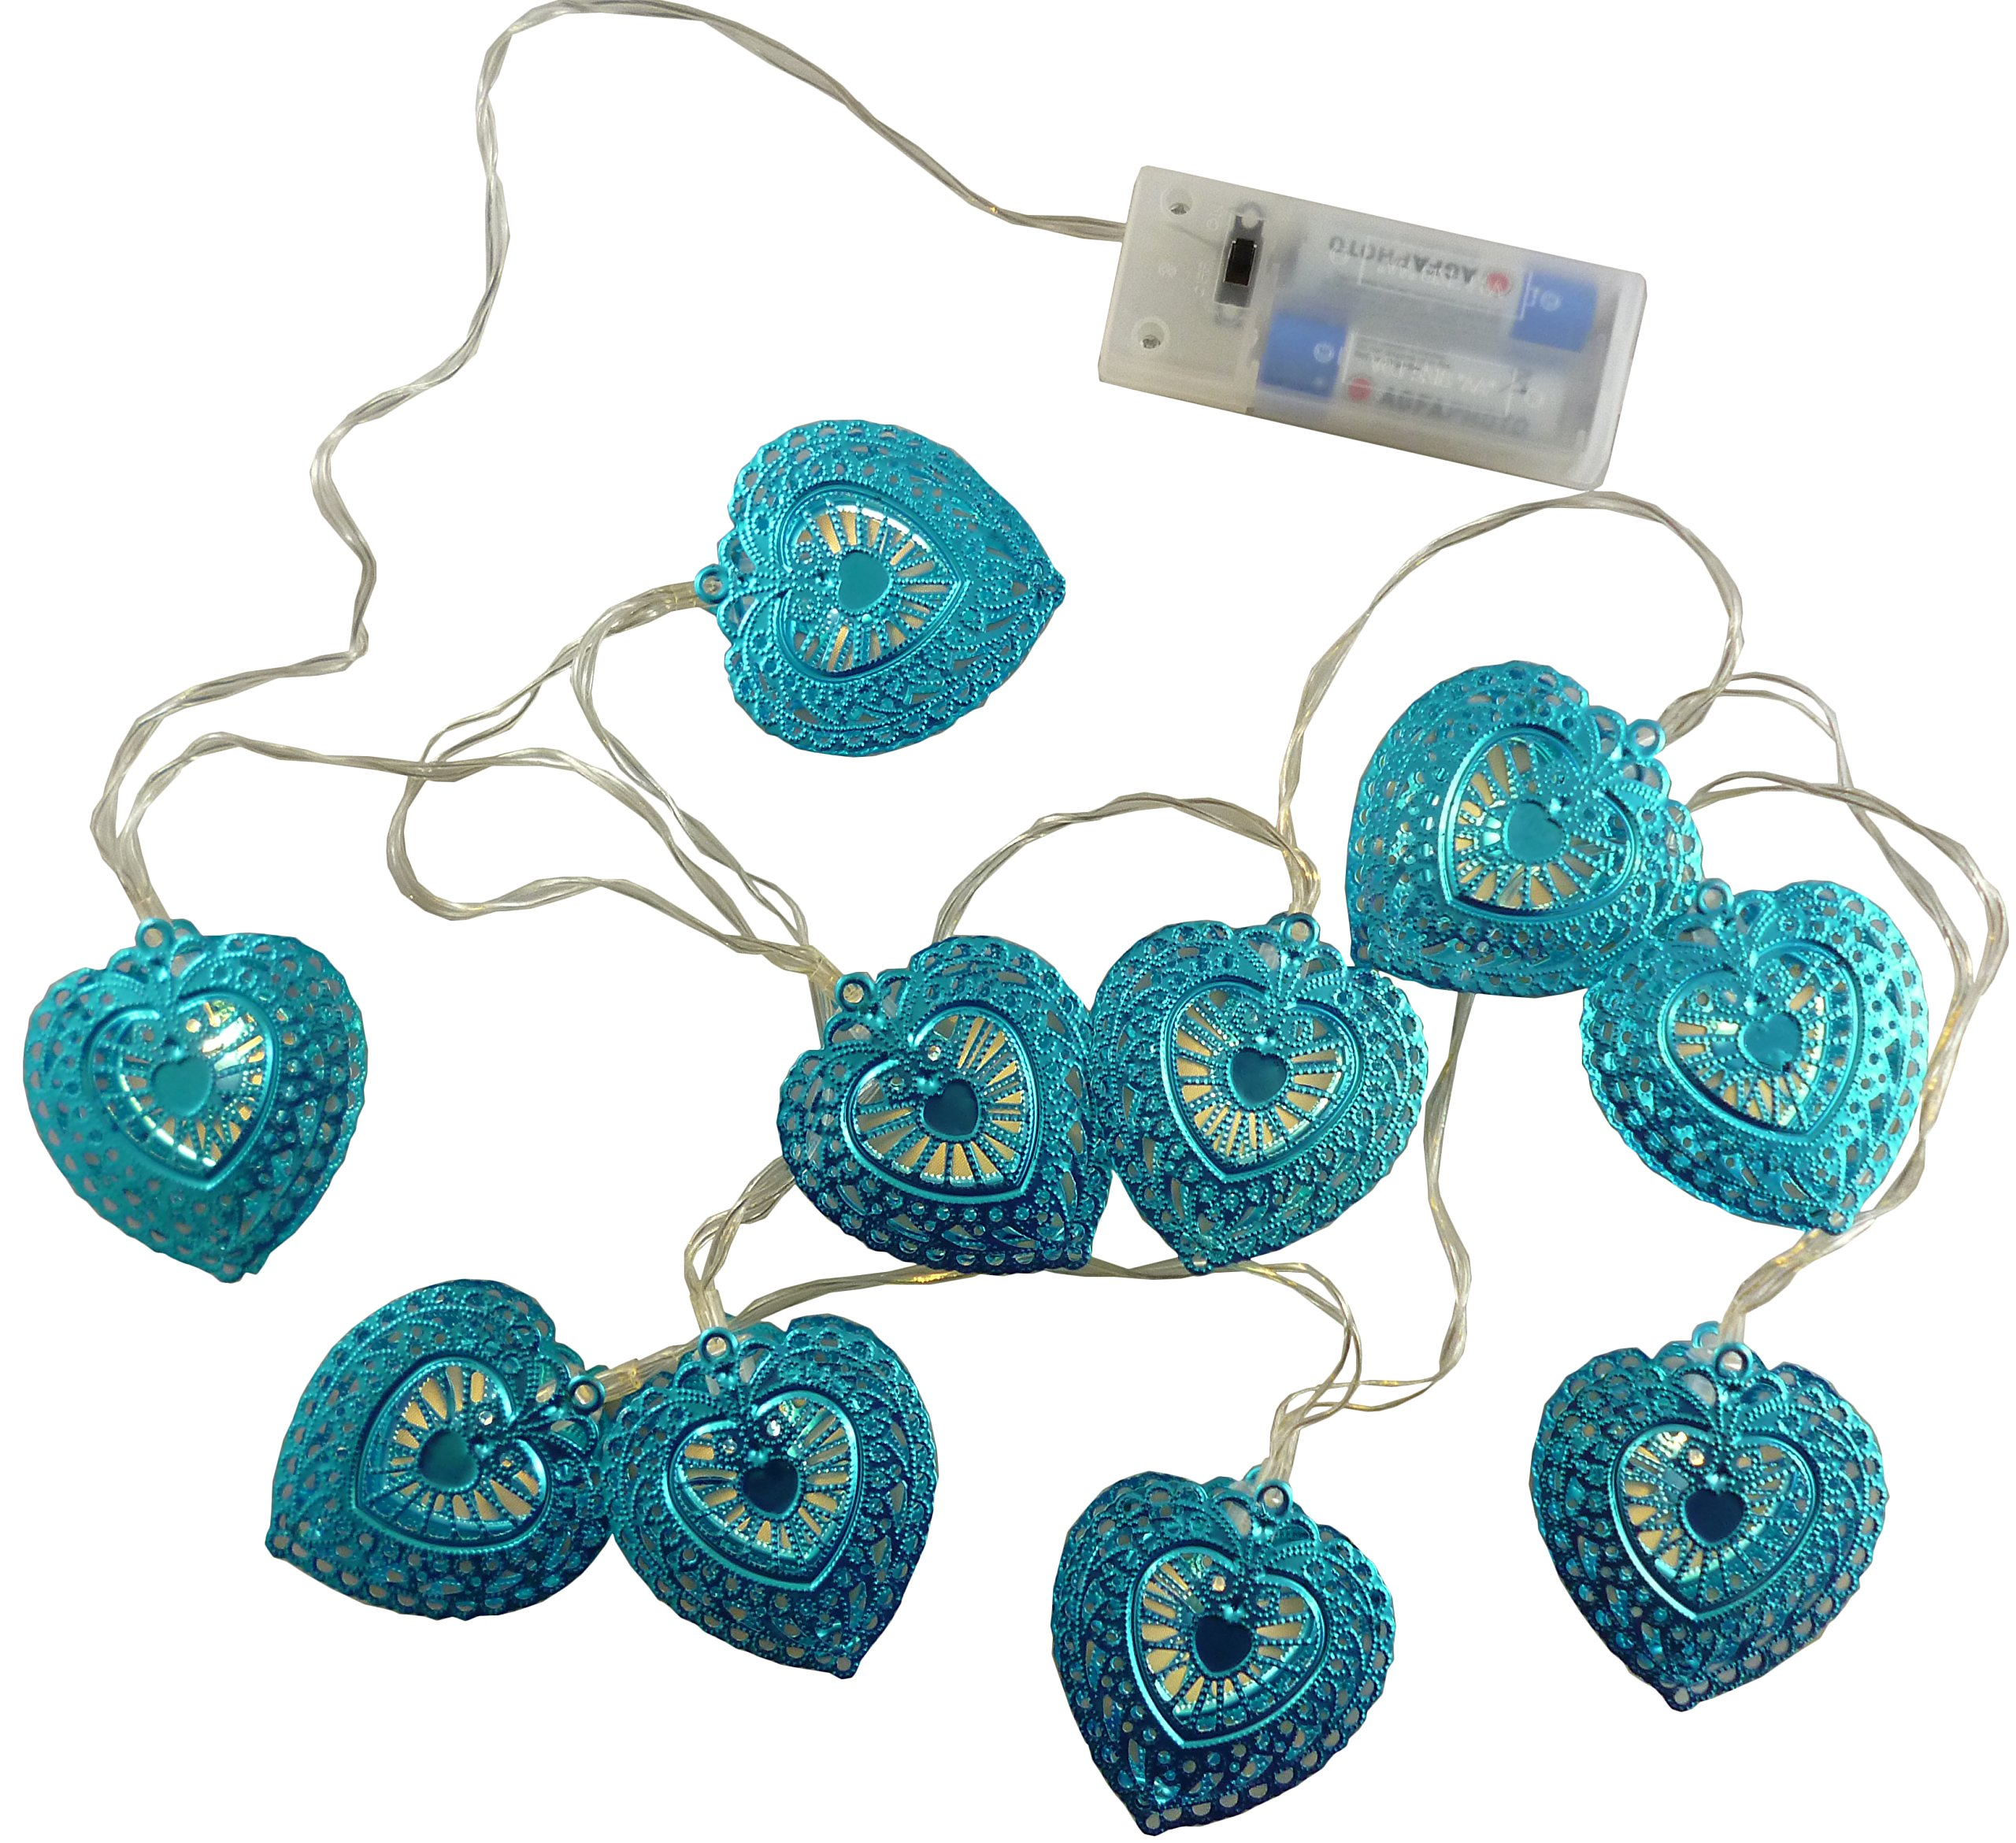 Christmas Concepts® 10 Warm White LED Metal Filigree Turquoise Heart Shaped Fairy Lights - Christmas Lights - Everyday Lights - Bedroom Lights by Christmas Concepts®